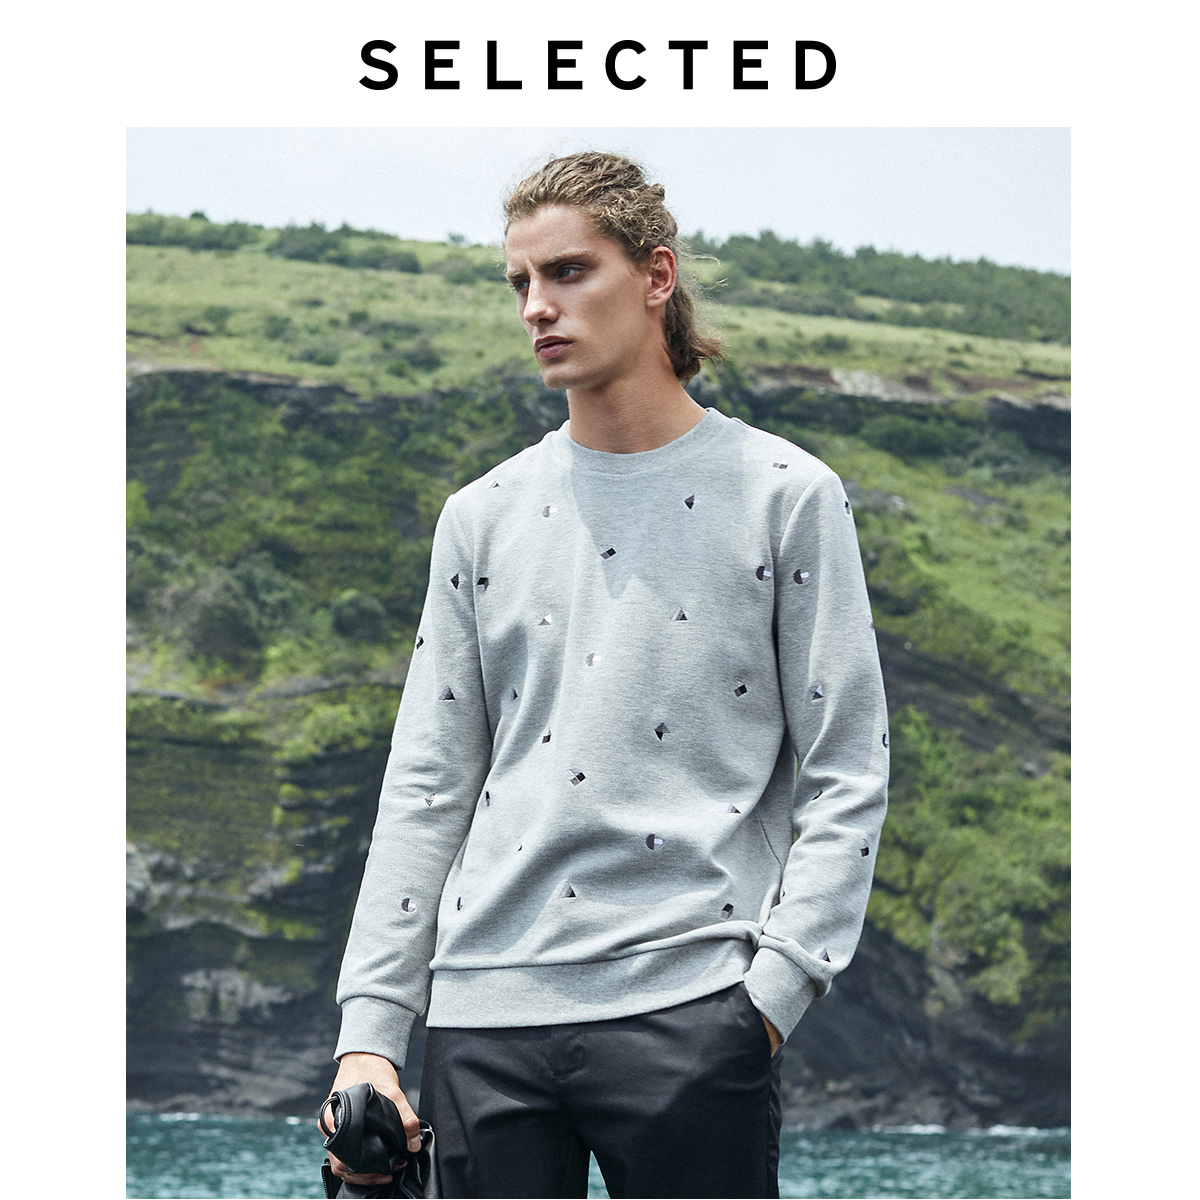 SELECTED Men's Colored Embroidery Pullover Hoodies New Autumn Sweatshirt Clothes S | 41934D503